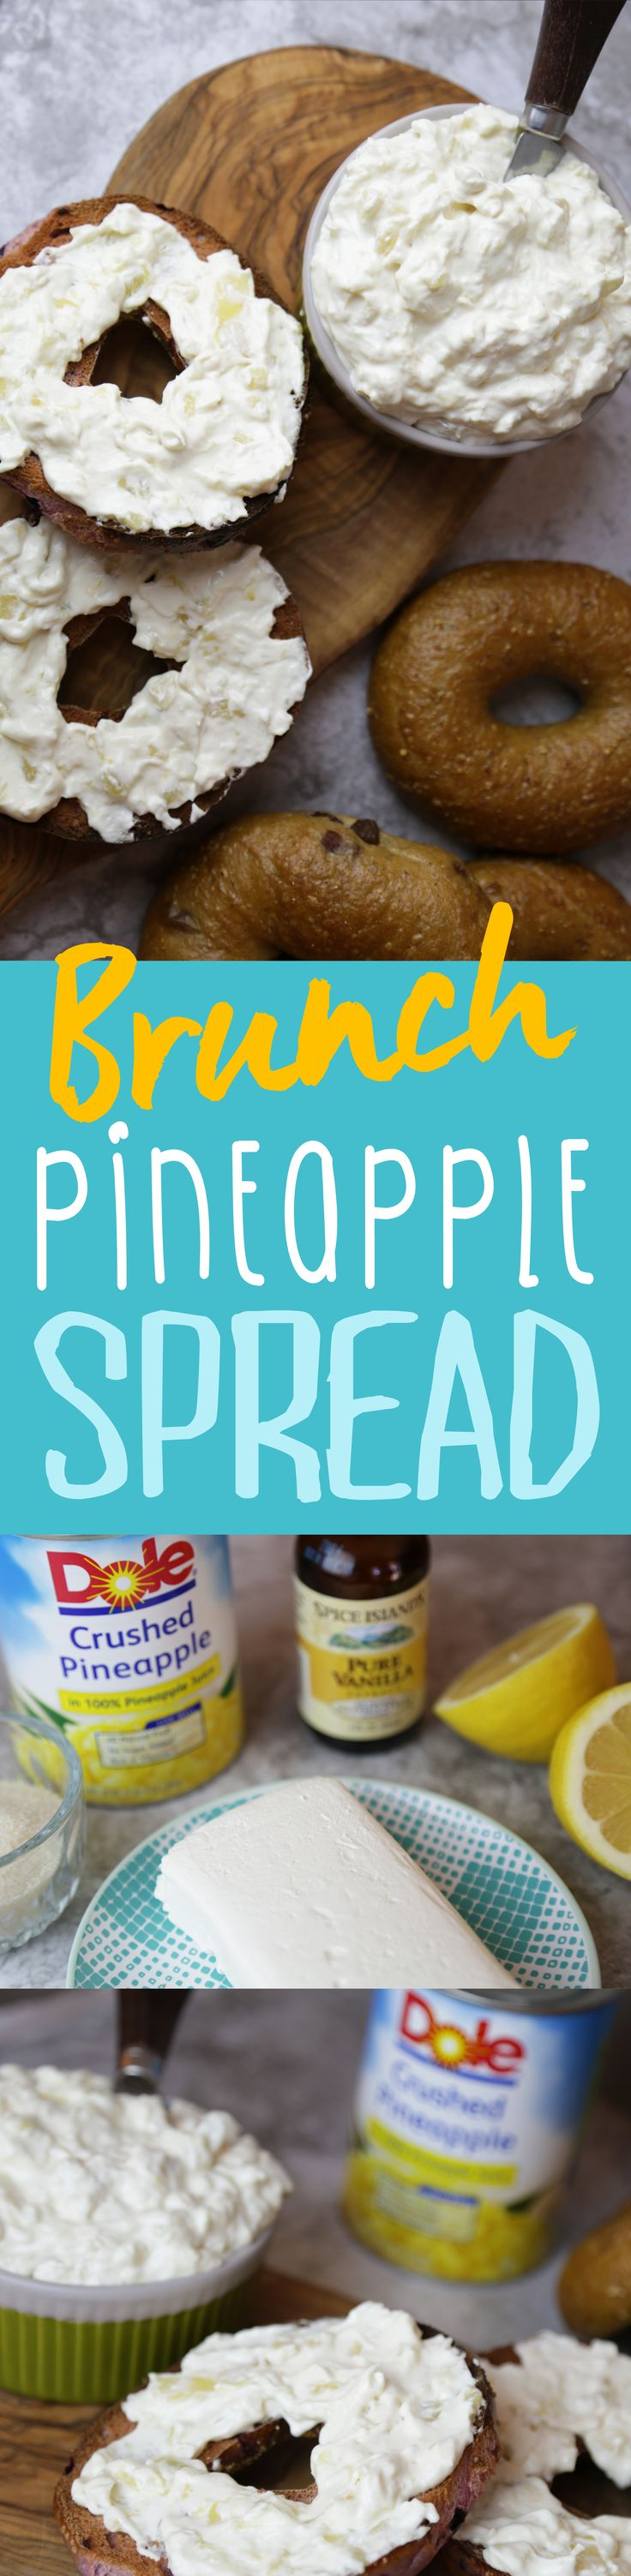 What's a #brunch without bagels and our special DOLE® Pineapple Lemon Cream Cheese Spread?